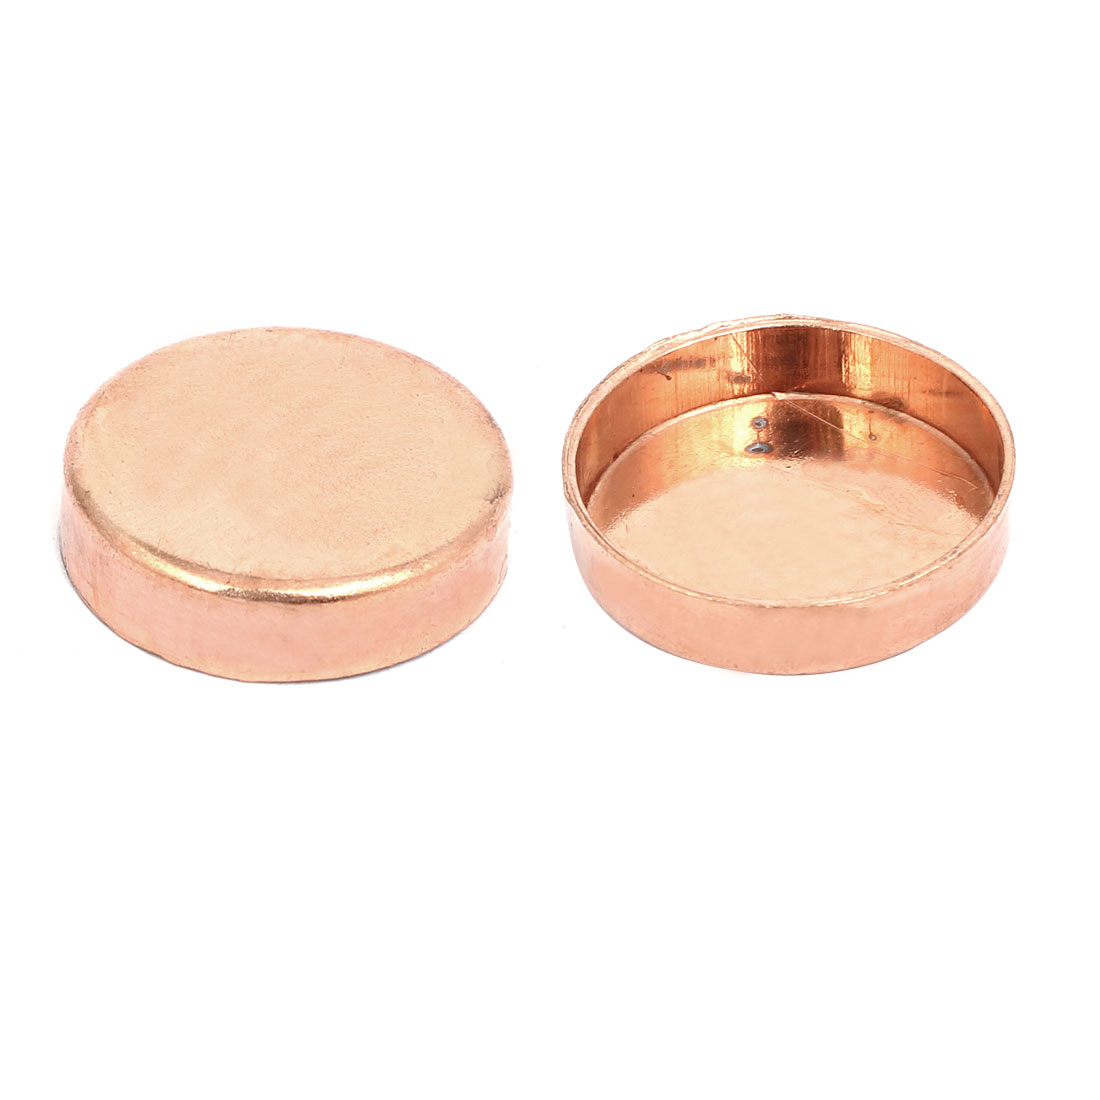 28.6mmx1.5mm Copper Pipe Tube End Cap Cover Plumbing Fitting 2pcs